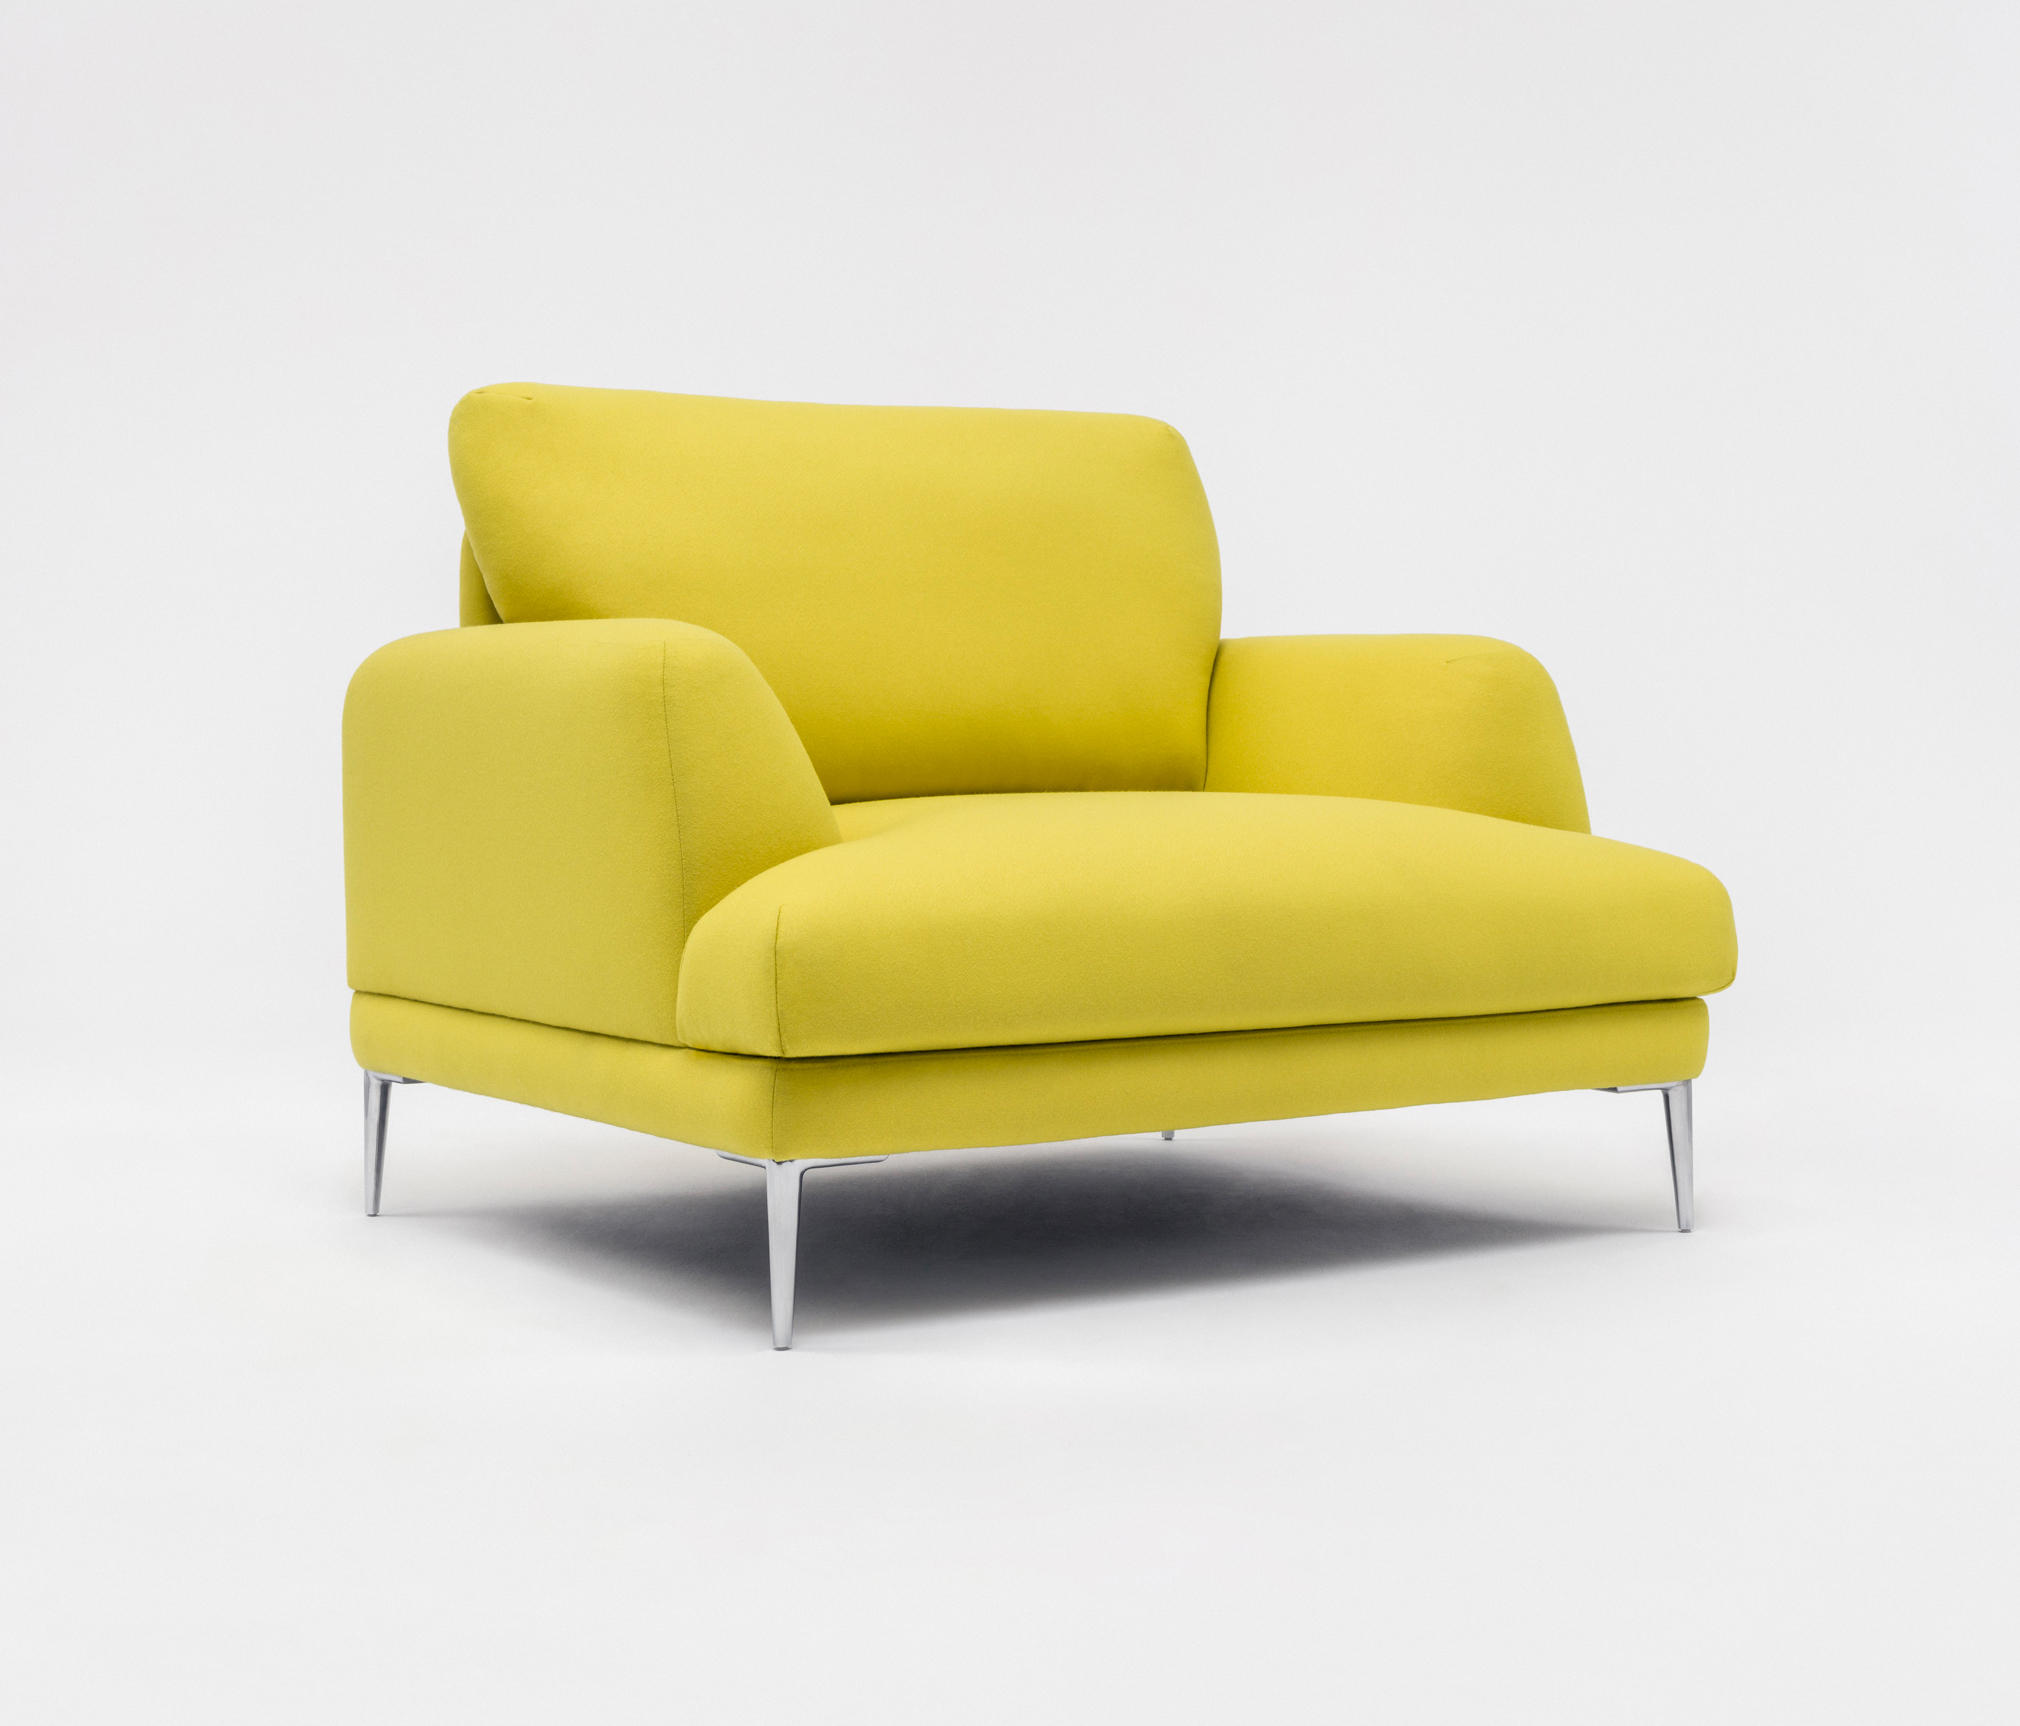 Classic Armchair By Comforty | Armchairs ...